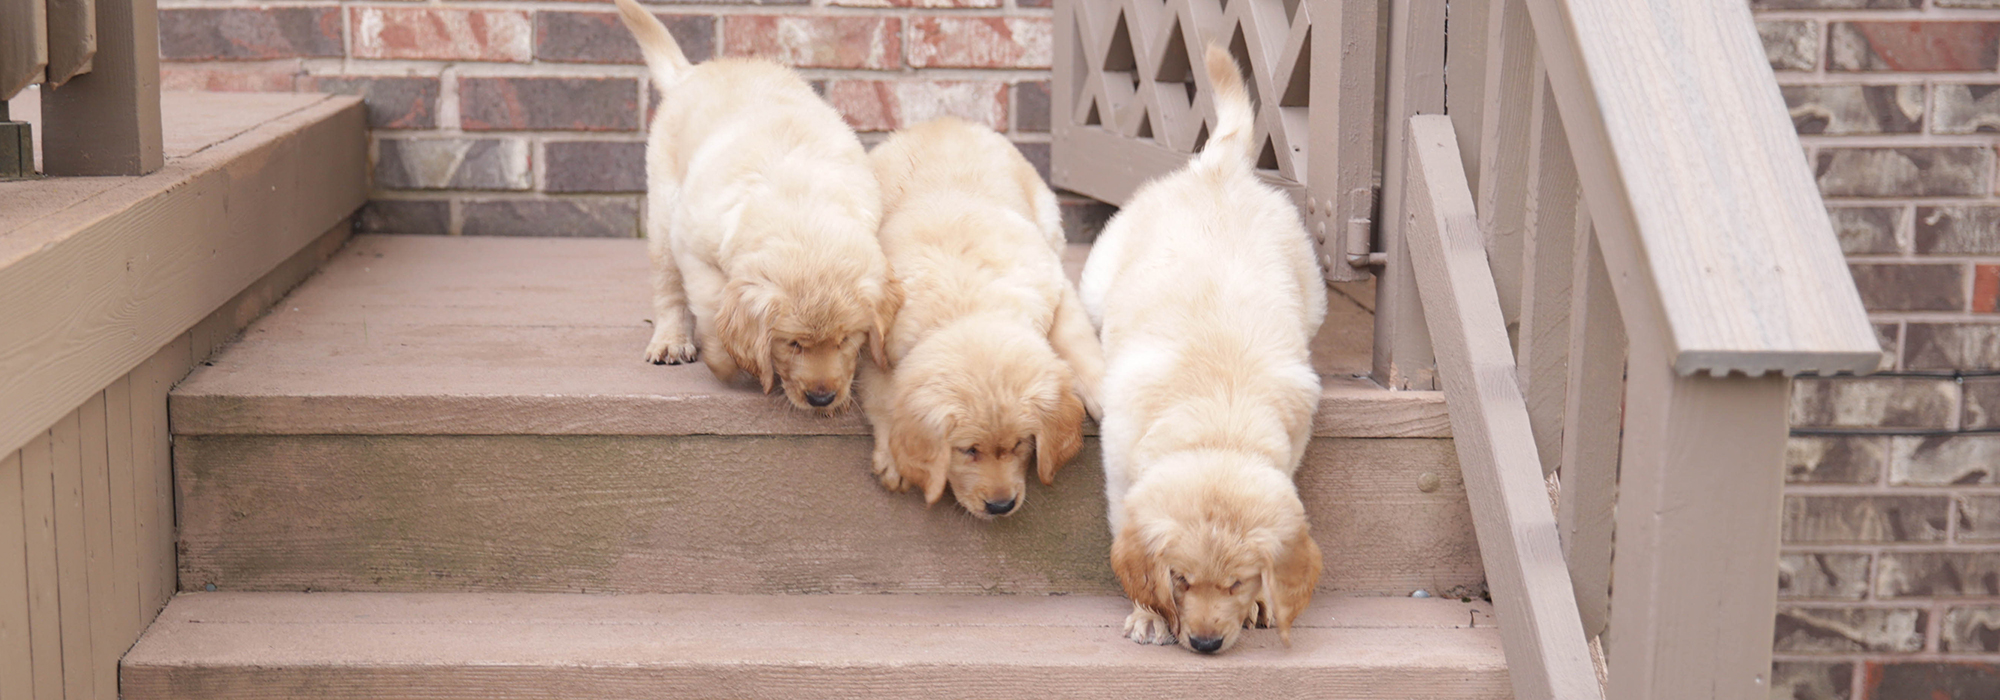 Pure Bred, AKC Registered, and OFA Certified Golden Retrievers